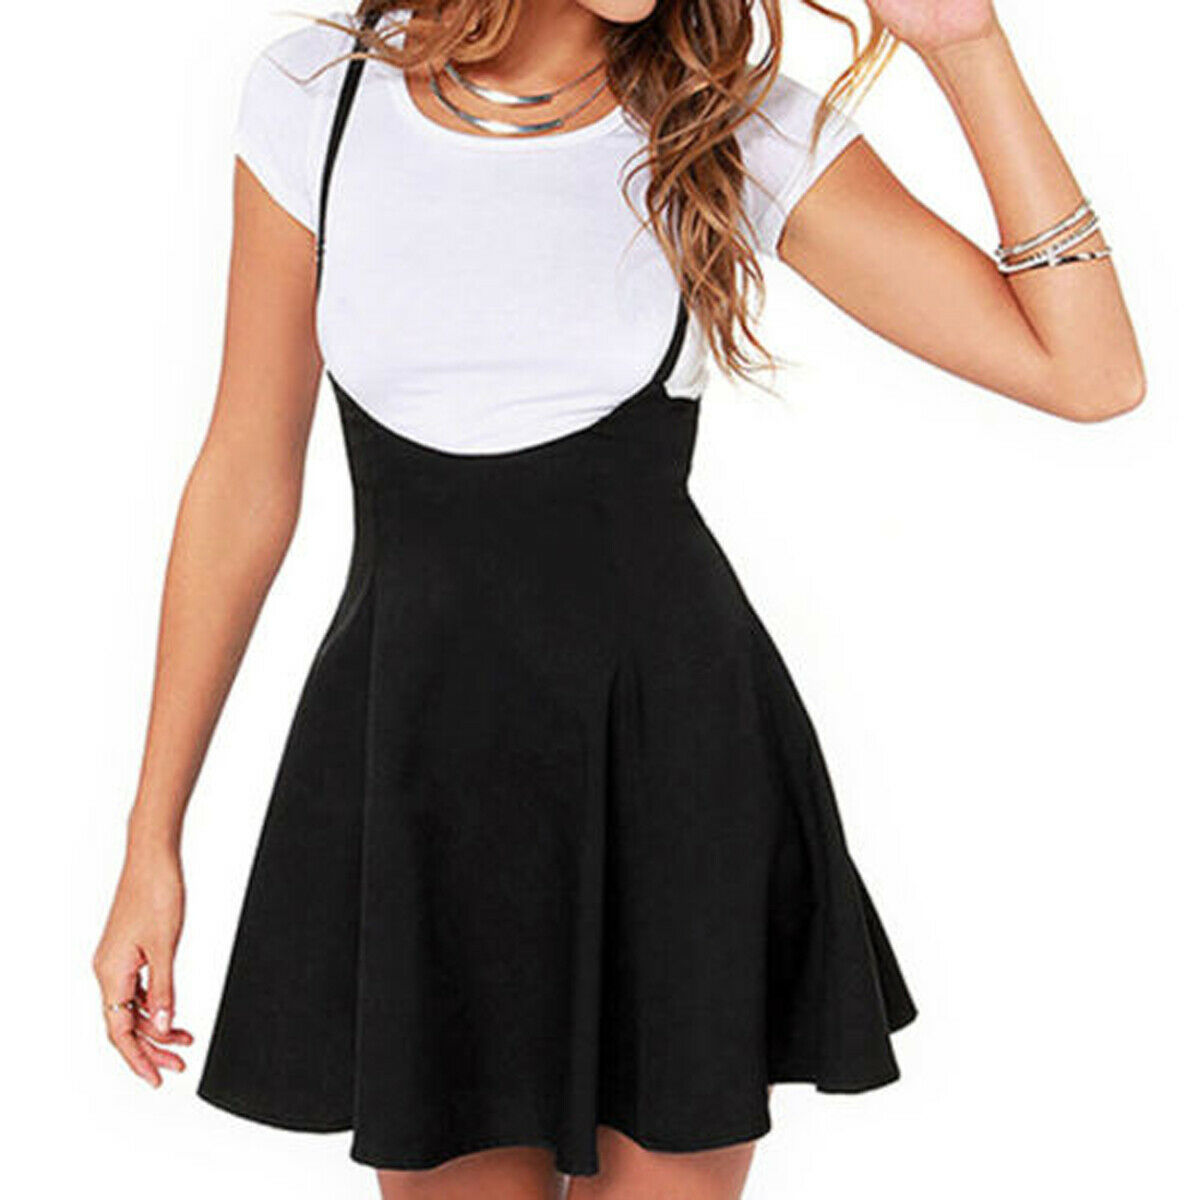 Women Mini Suspender Skater Skirt High Waisted Pleated Adjustable Strap Black